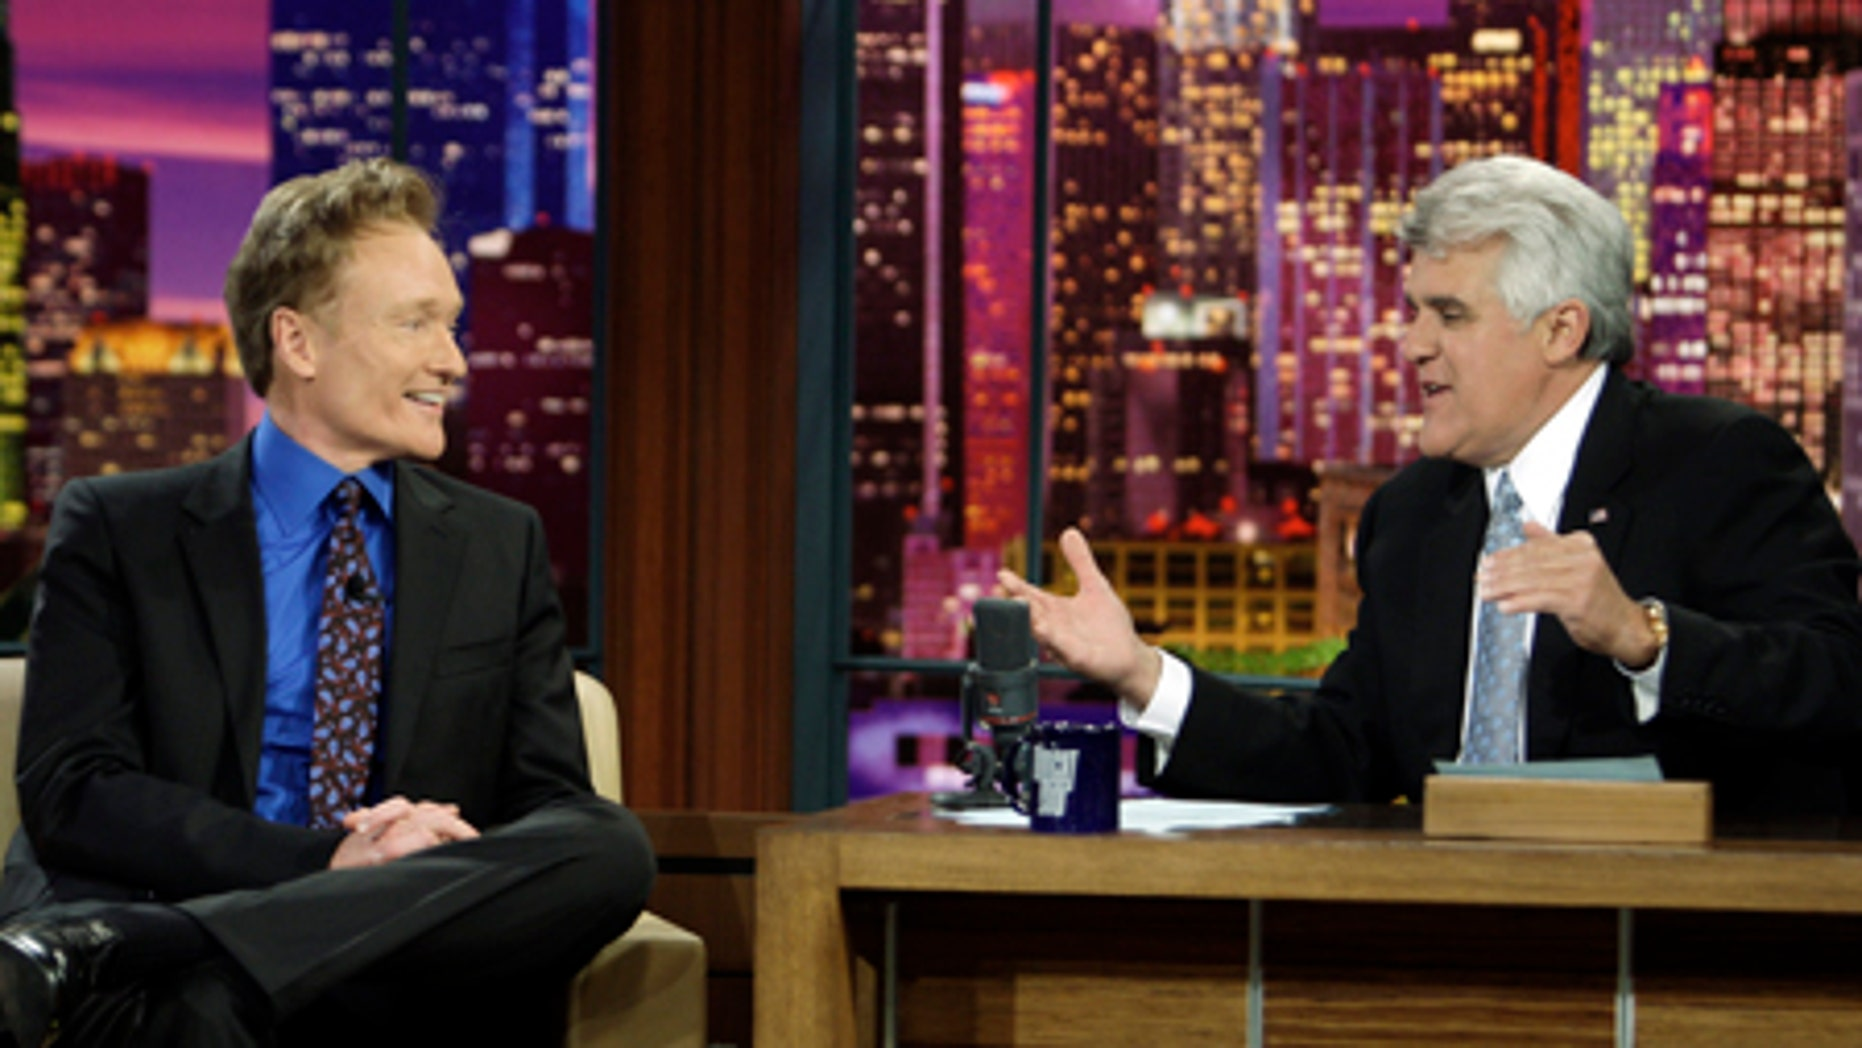 In this photo provided by NBC, Conan O'Brien interviewed by Jay Leno during Leno's final taping as host of The Tonight Show in Burbank, Calif. on Friday, May 29, 2009. (AP Photo/NBC, Paul Drinkwater) **MAGS OUT, NO ARCHIVING, NO SALES**